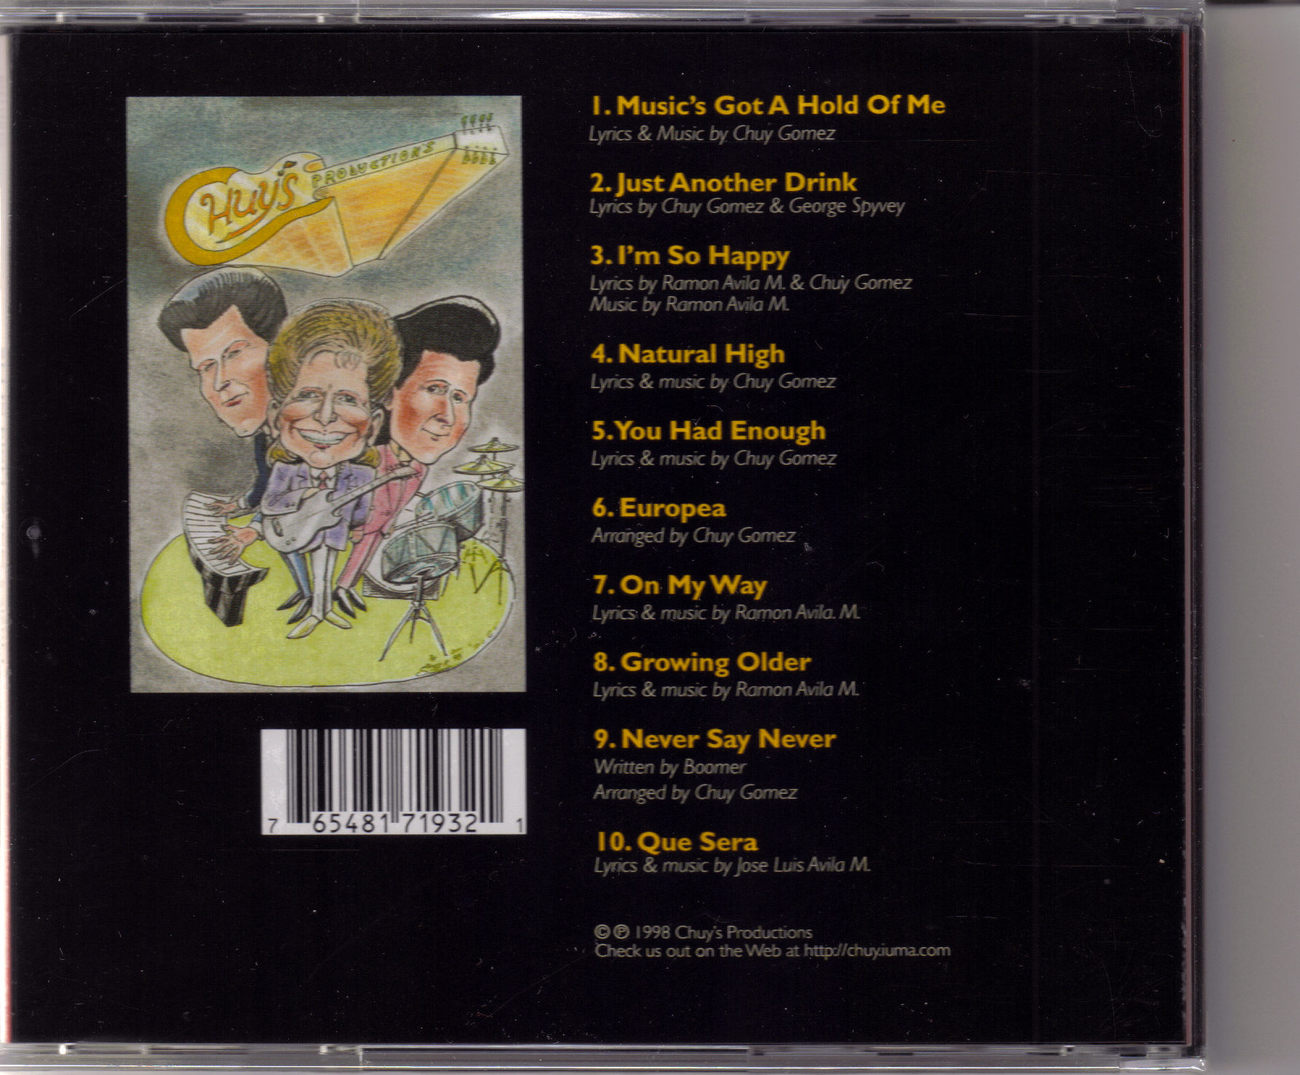 CHUY Music's Got A Hold Of Me CD